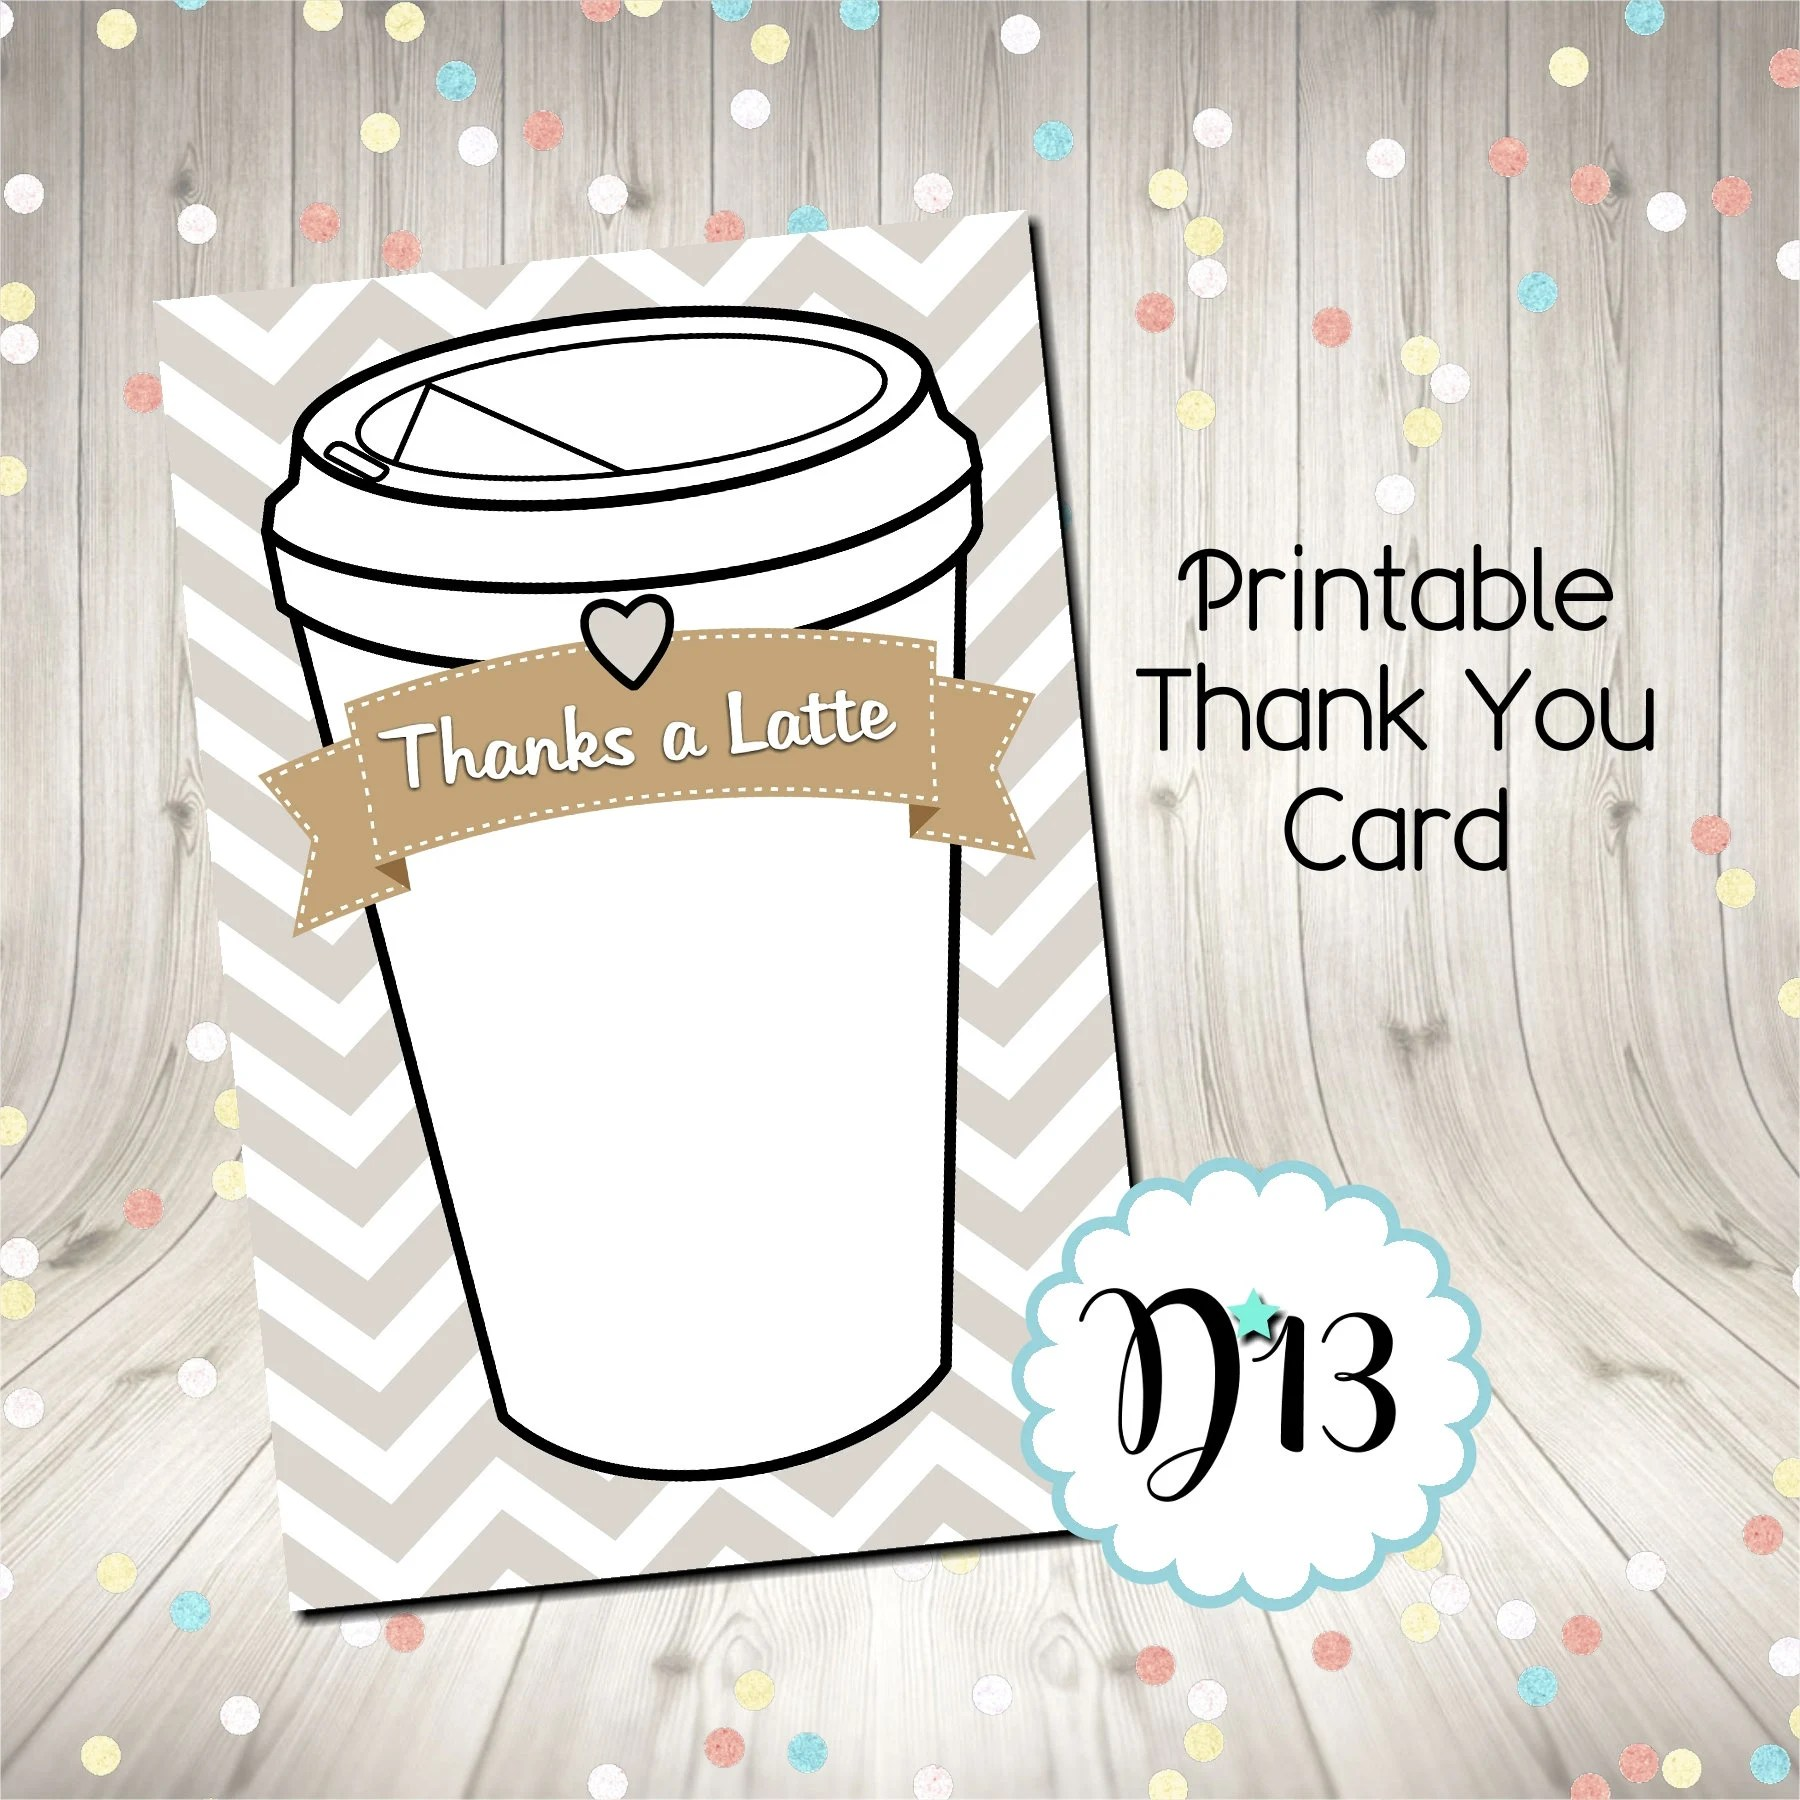 Thanks A Latte Thank You Card Printable Digital INSTANT DOWNLOAD by